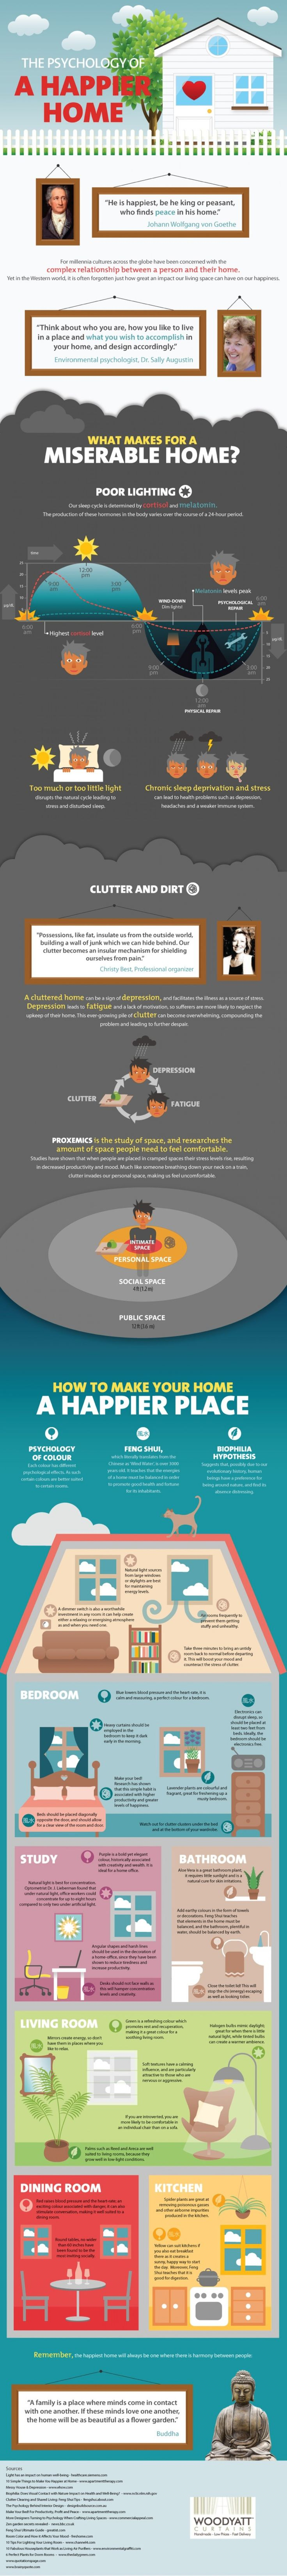 Psychology of a happier home